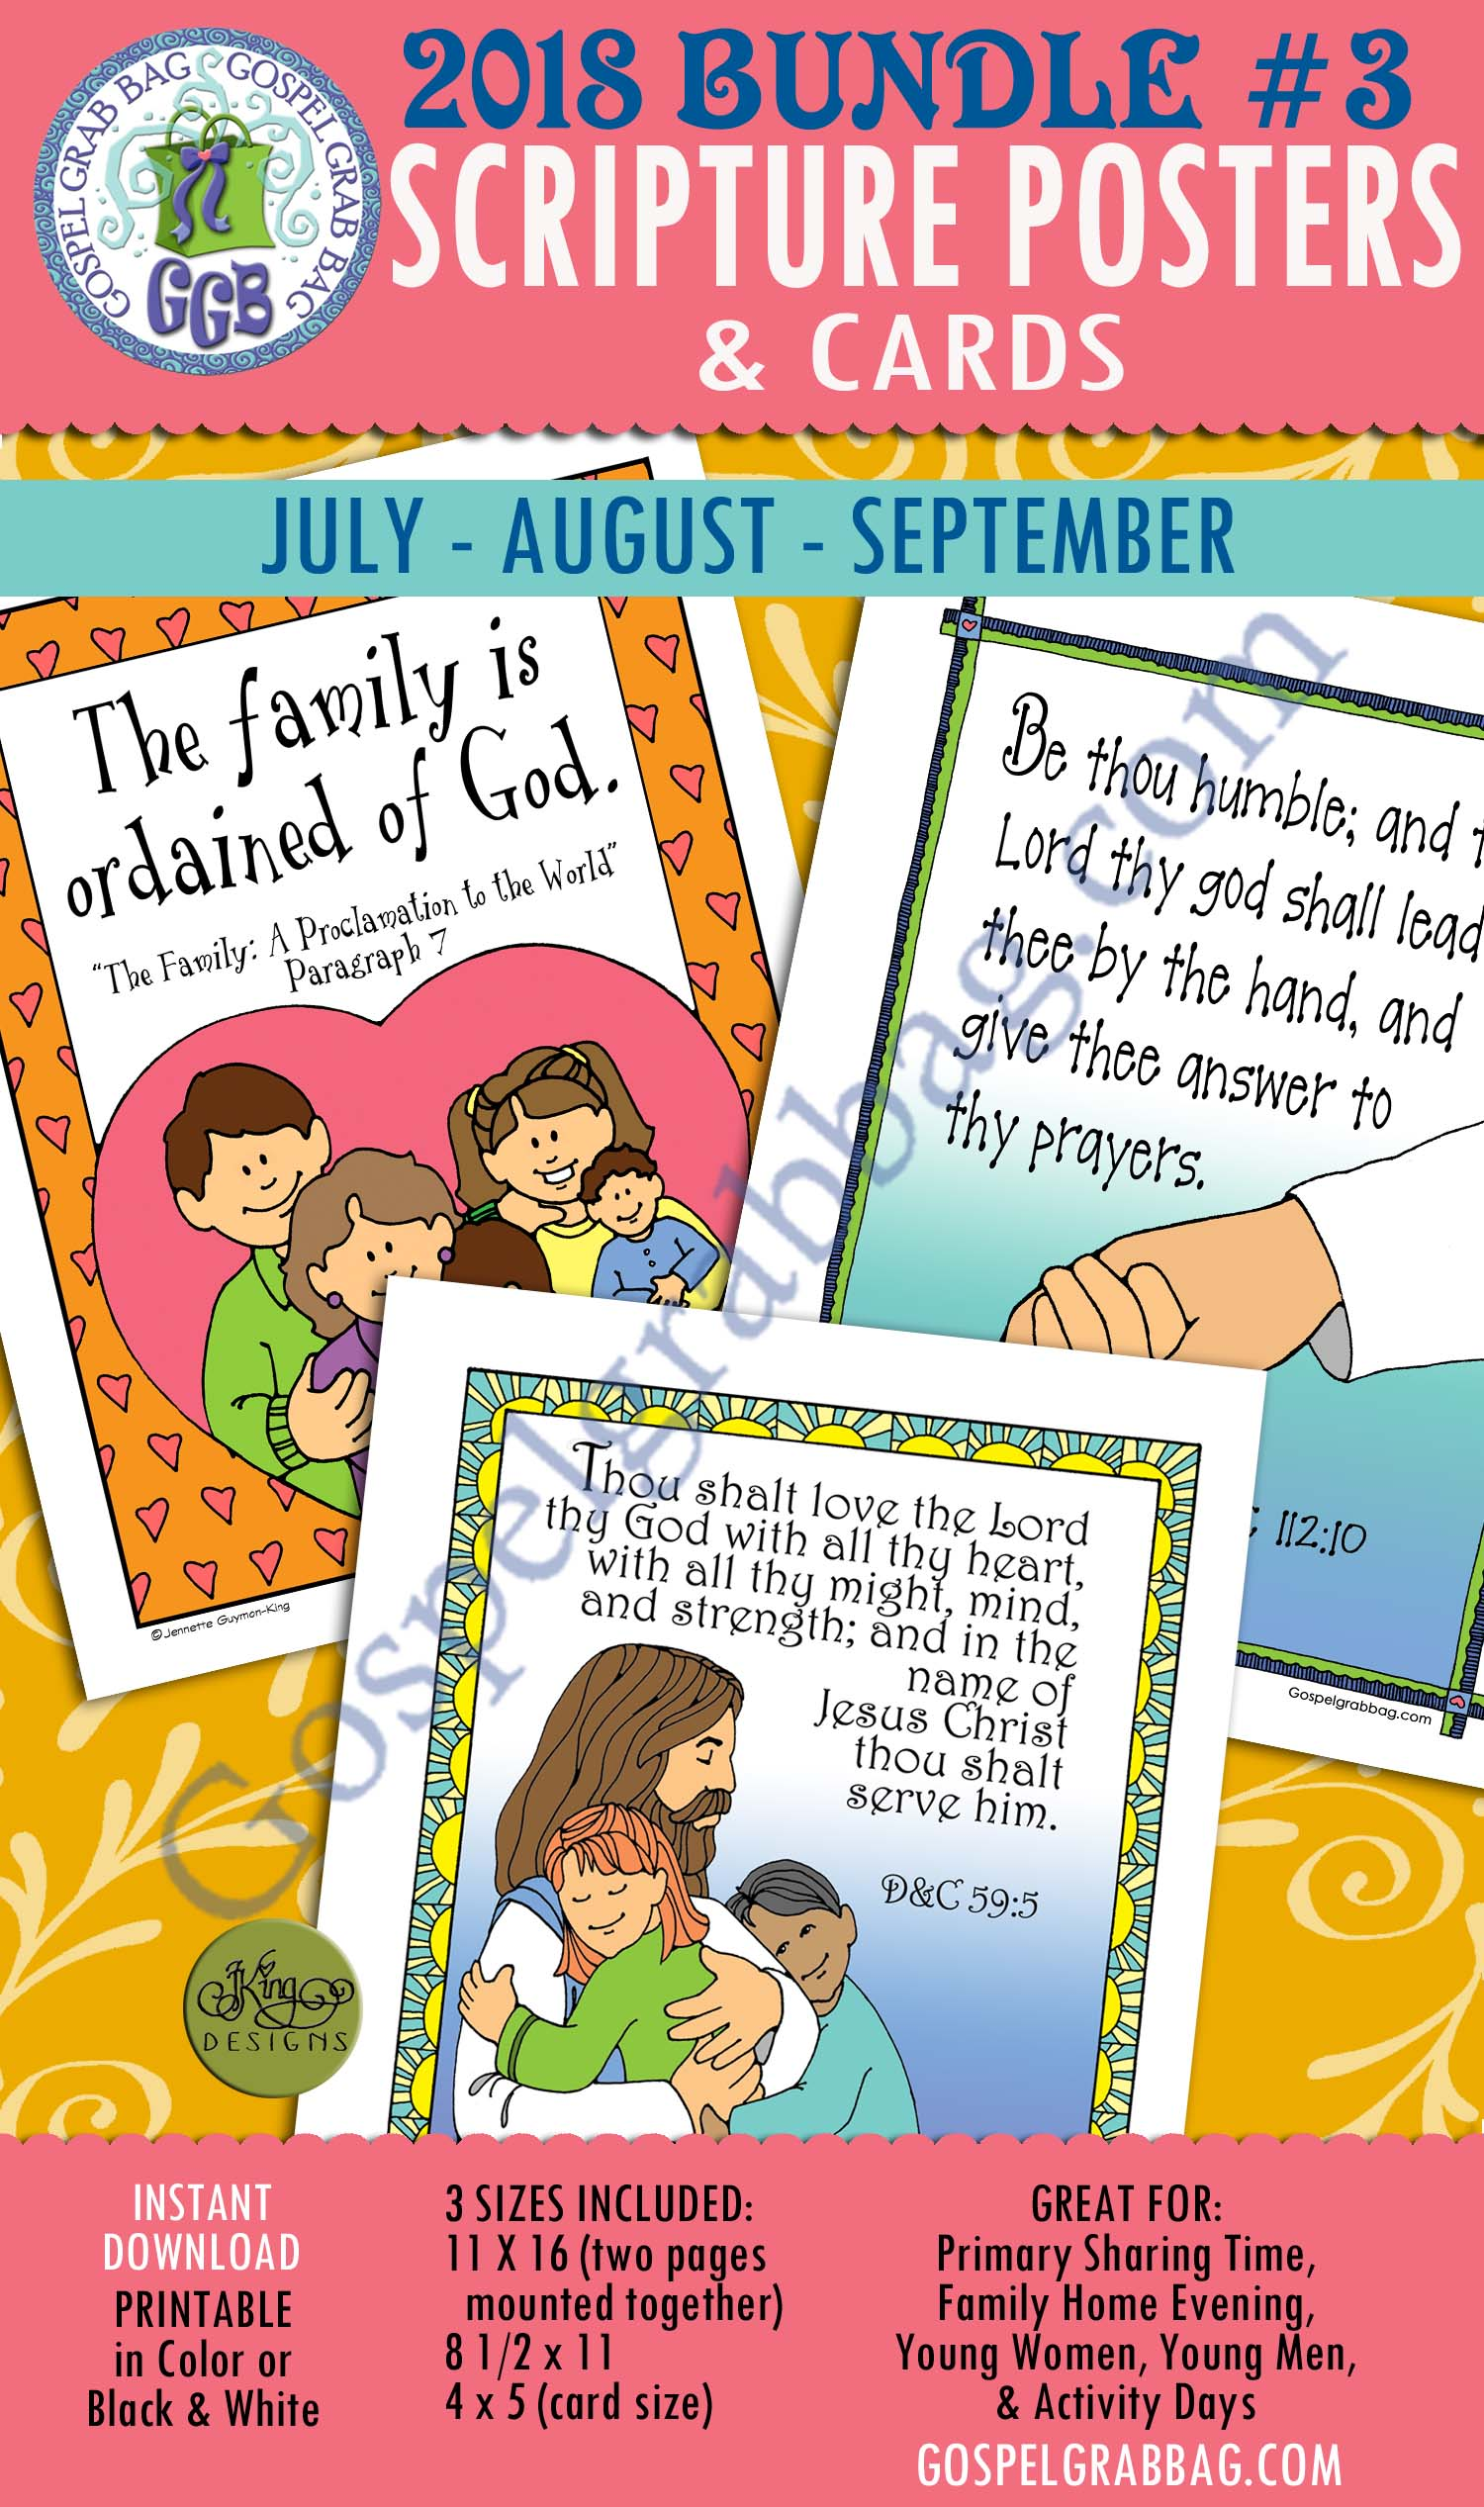 400 BUNDLE 3 Scripture Posters Cards For Sharing Time July August